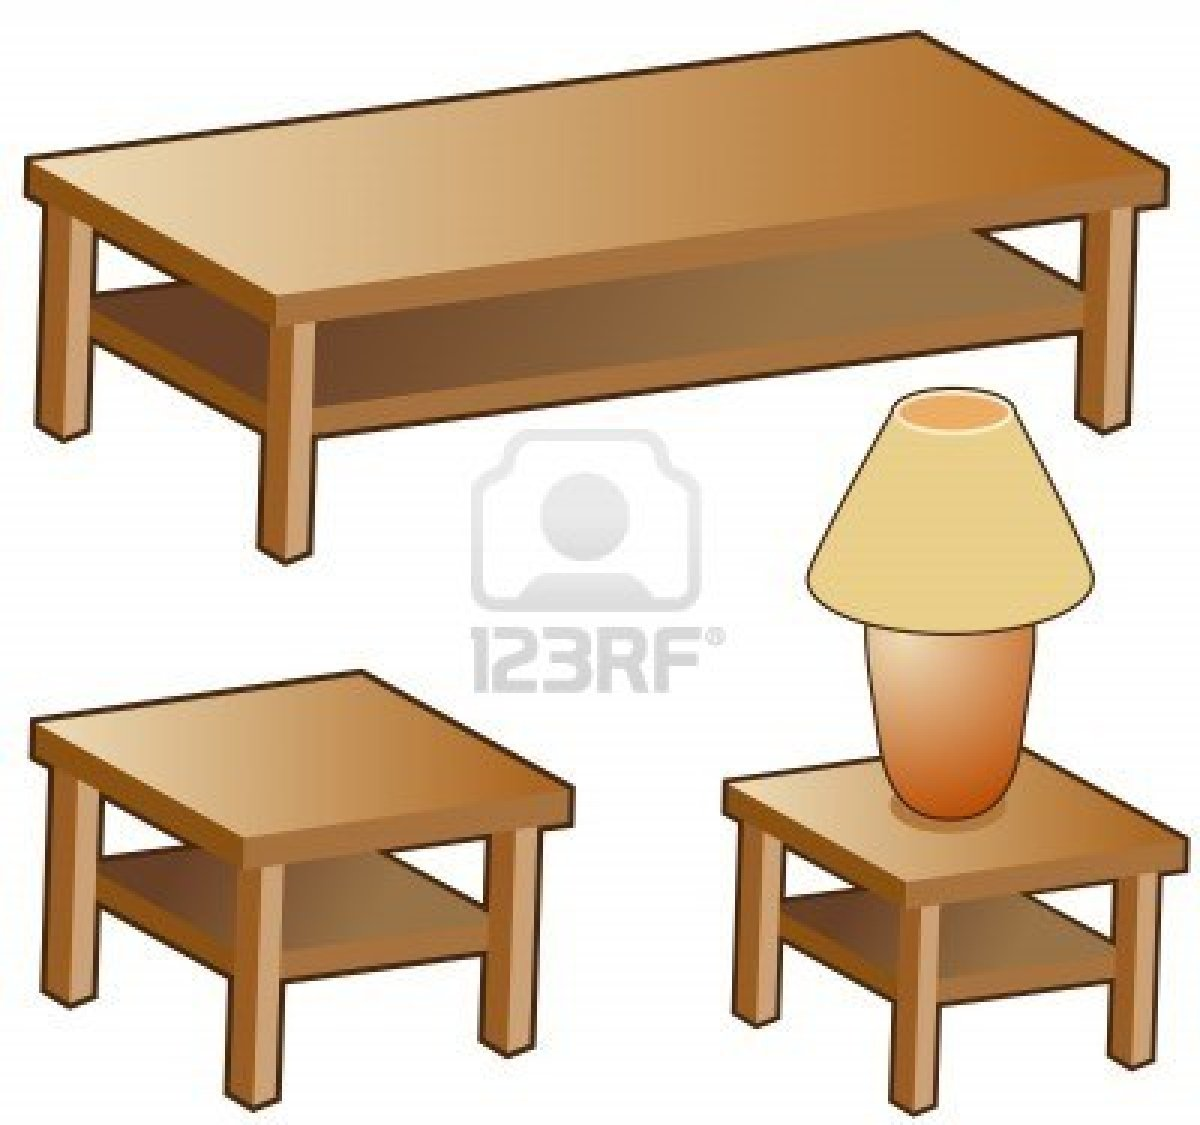 Furniture clipart coffee table Free Clipart Panda Table Images